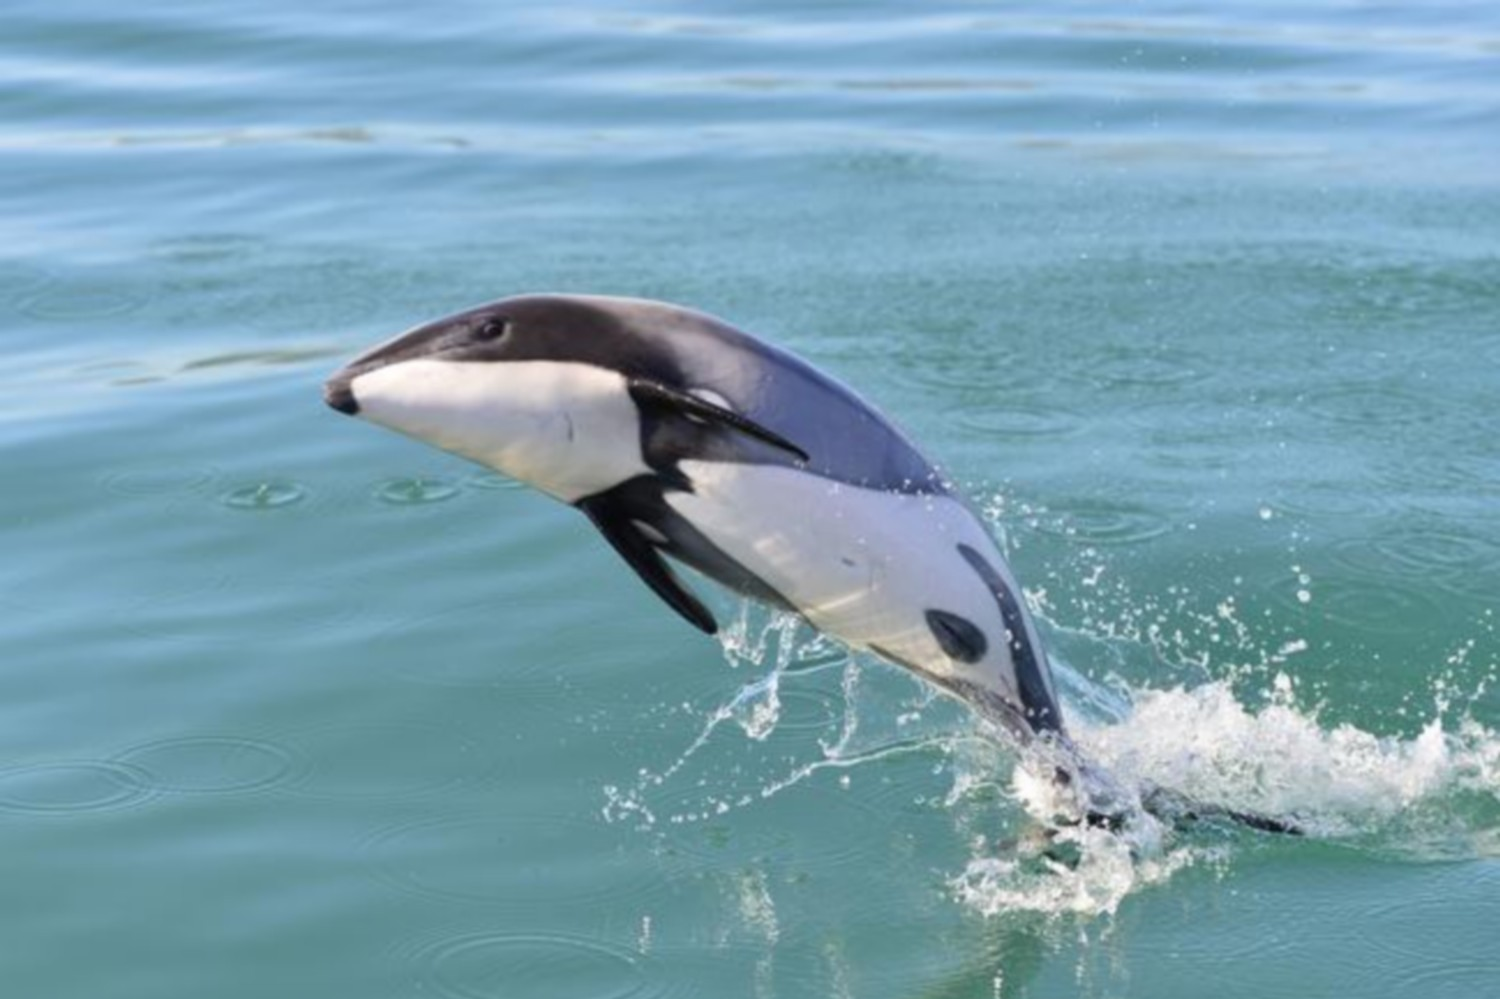 Drones using AI to track rare Maui dolphins